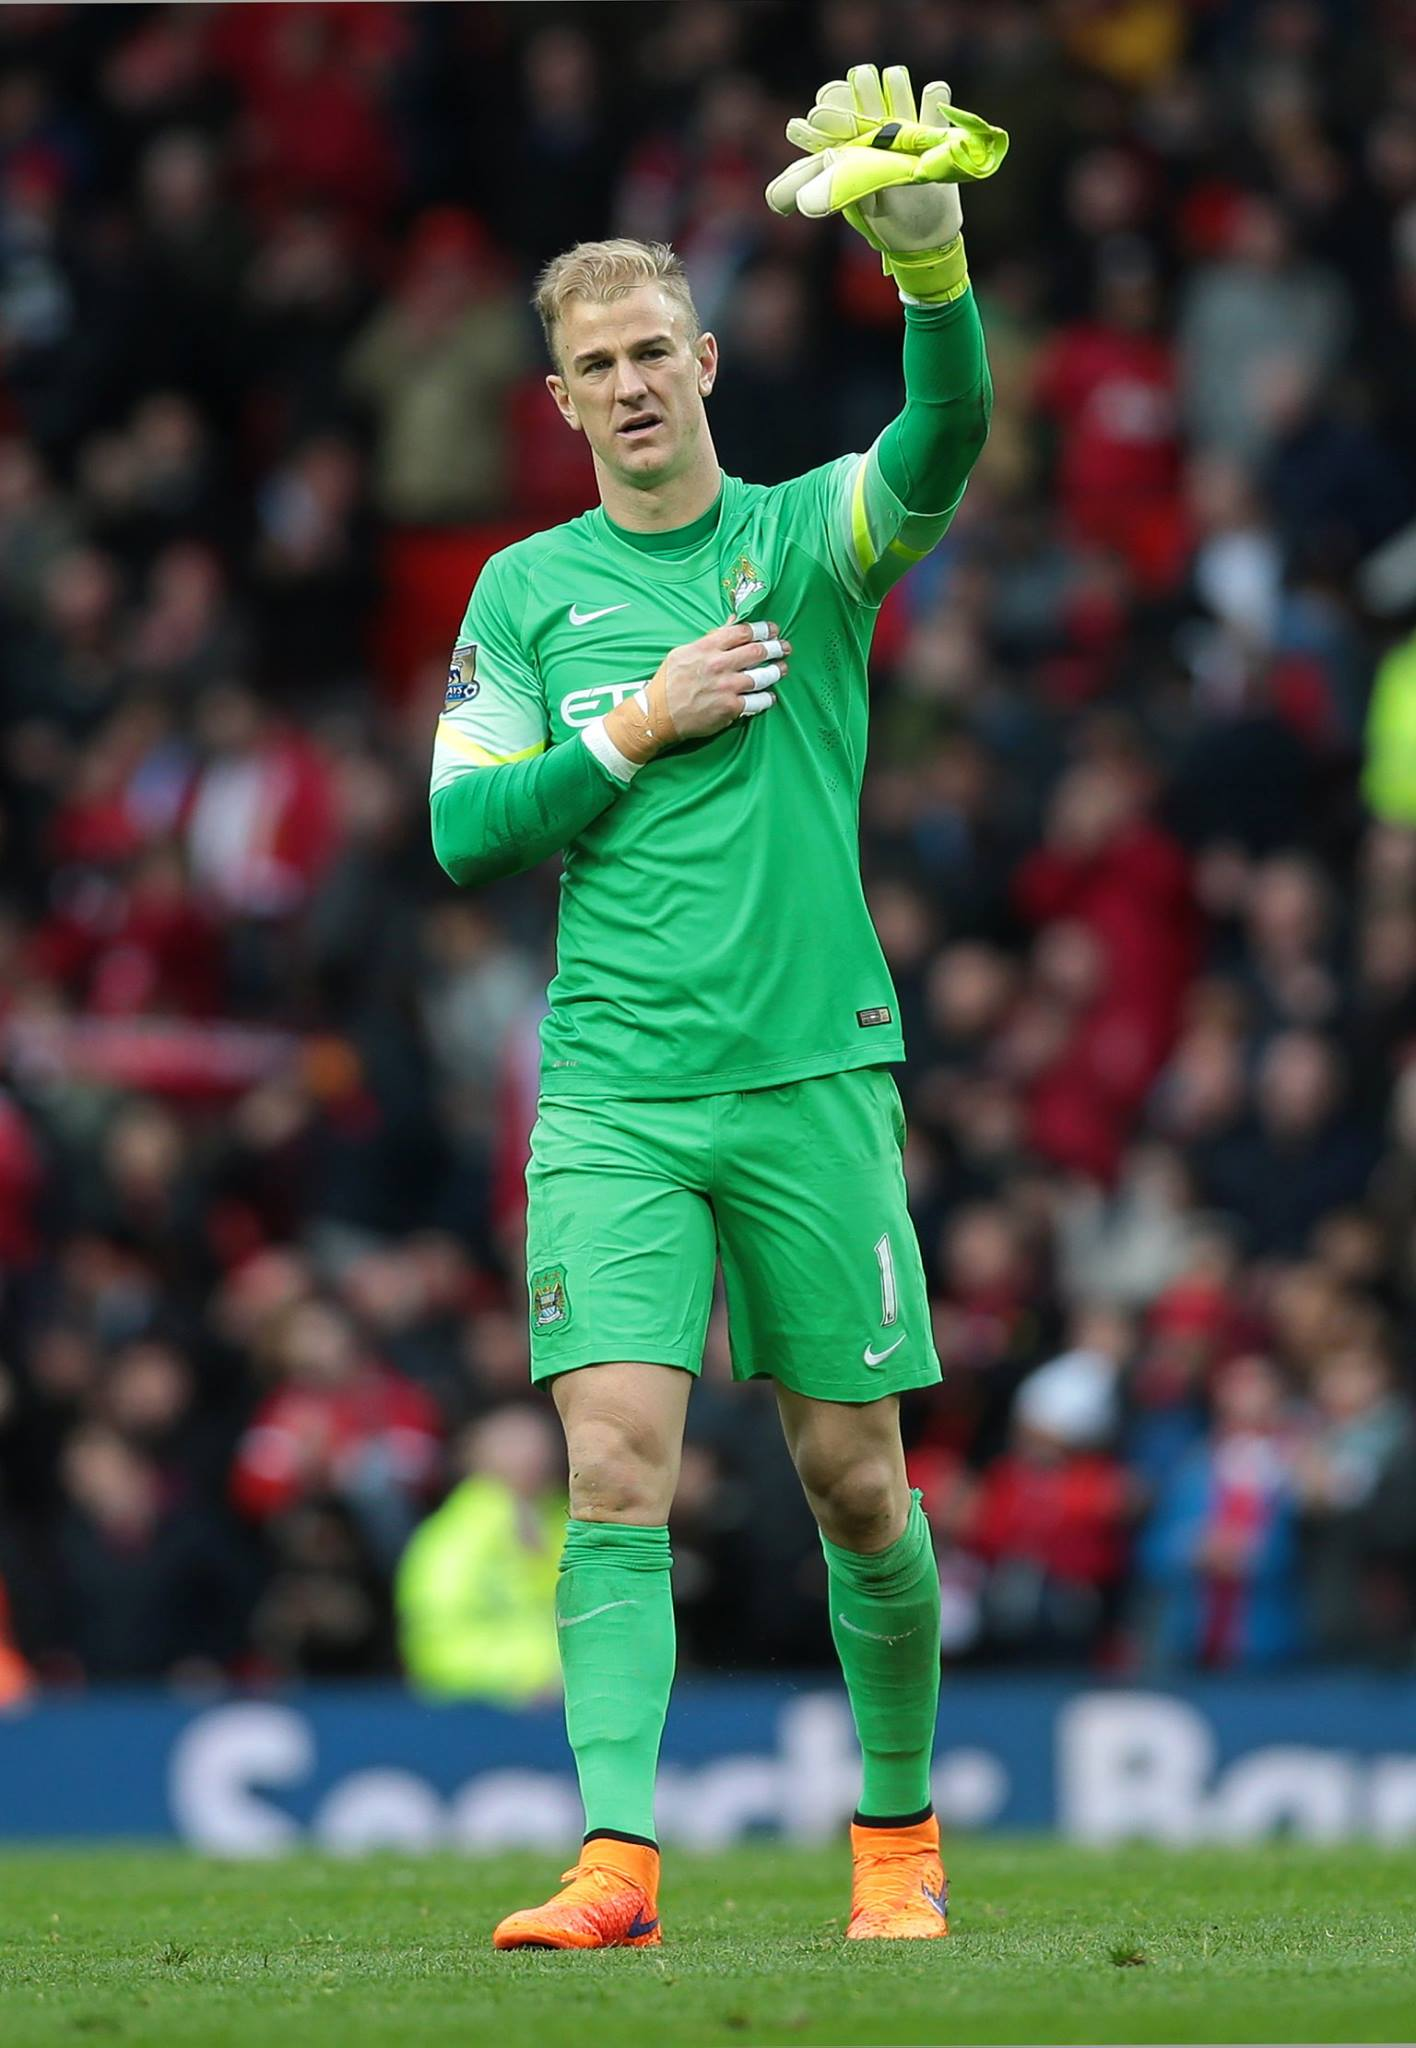 Hart-ache - Joe shows his pain at the end of the derby day defeat. Courtesy@MCFC